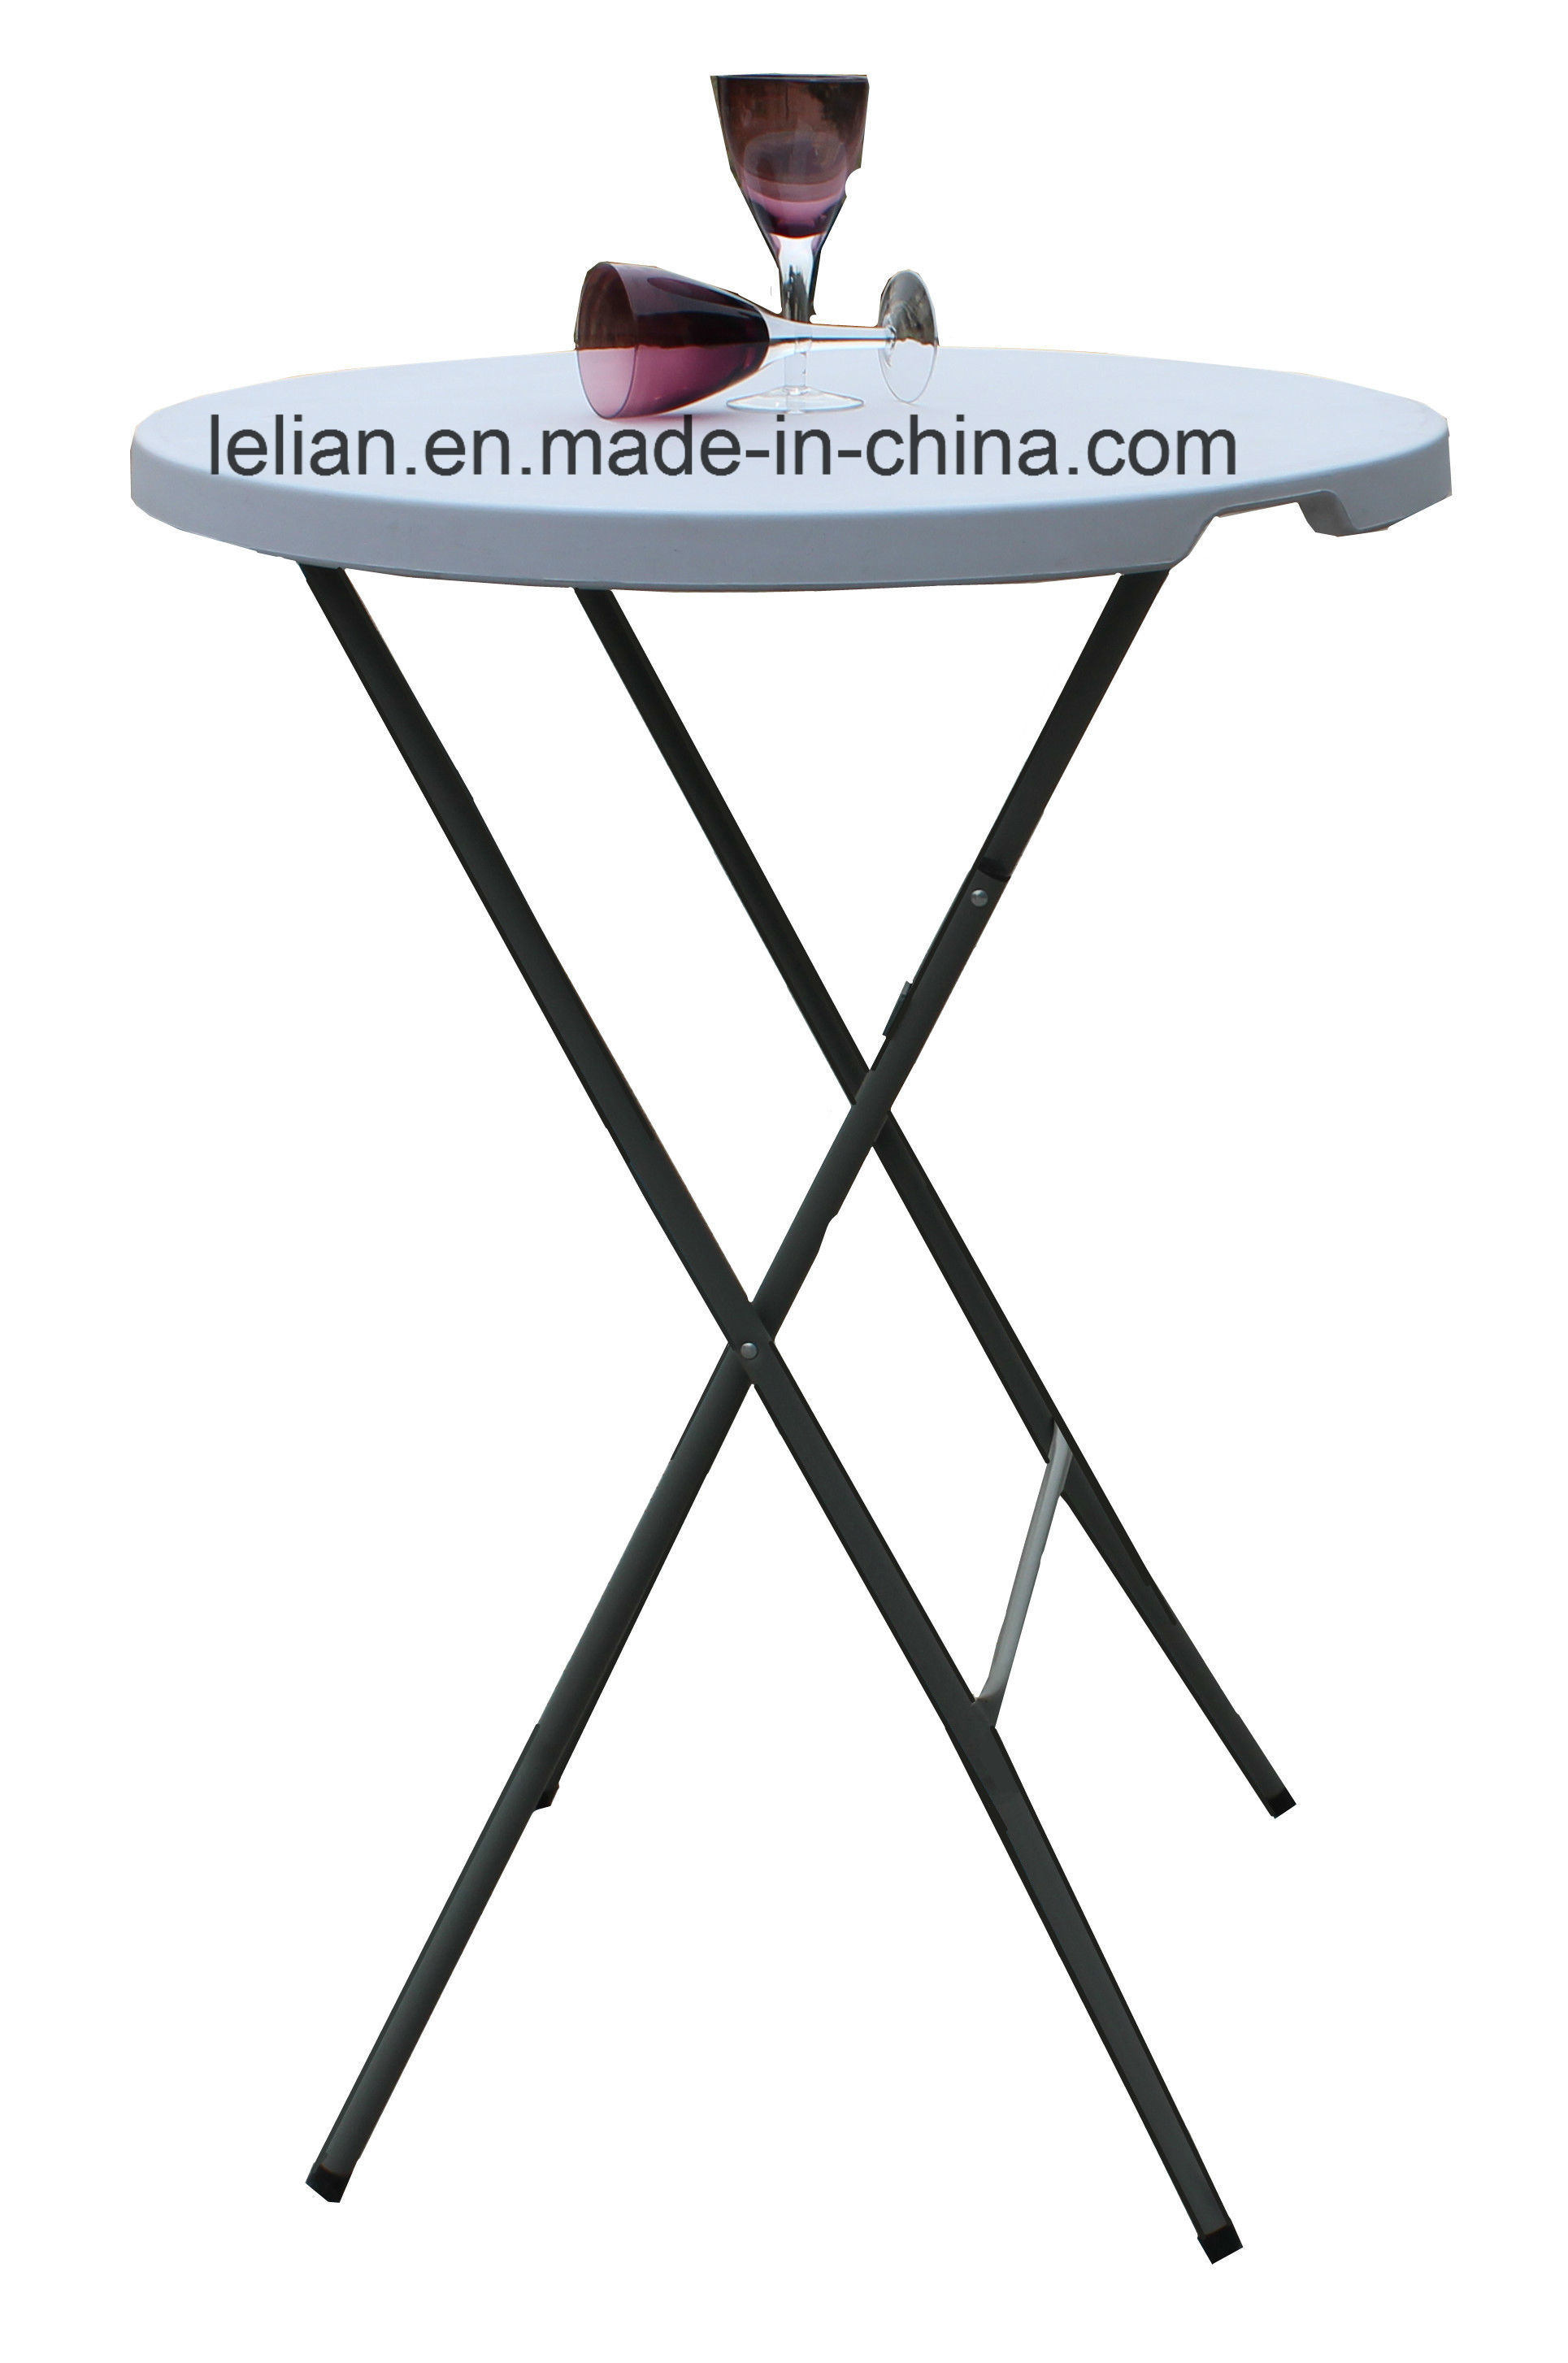 Outdoor Events Steel Frame Durable High Density HDPE Plastic Folding Table (LL-CFT007)